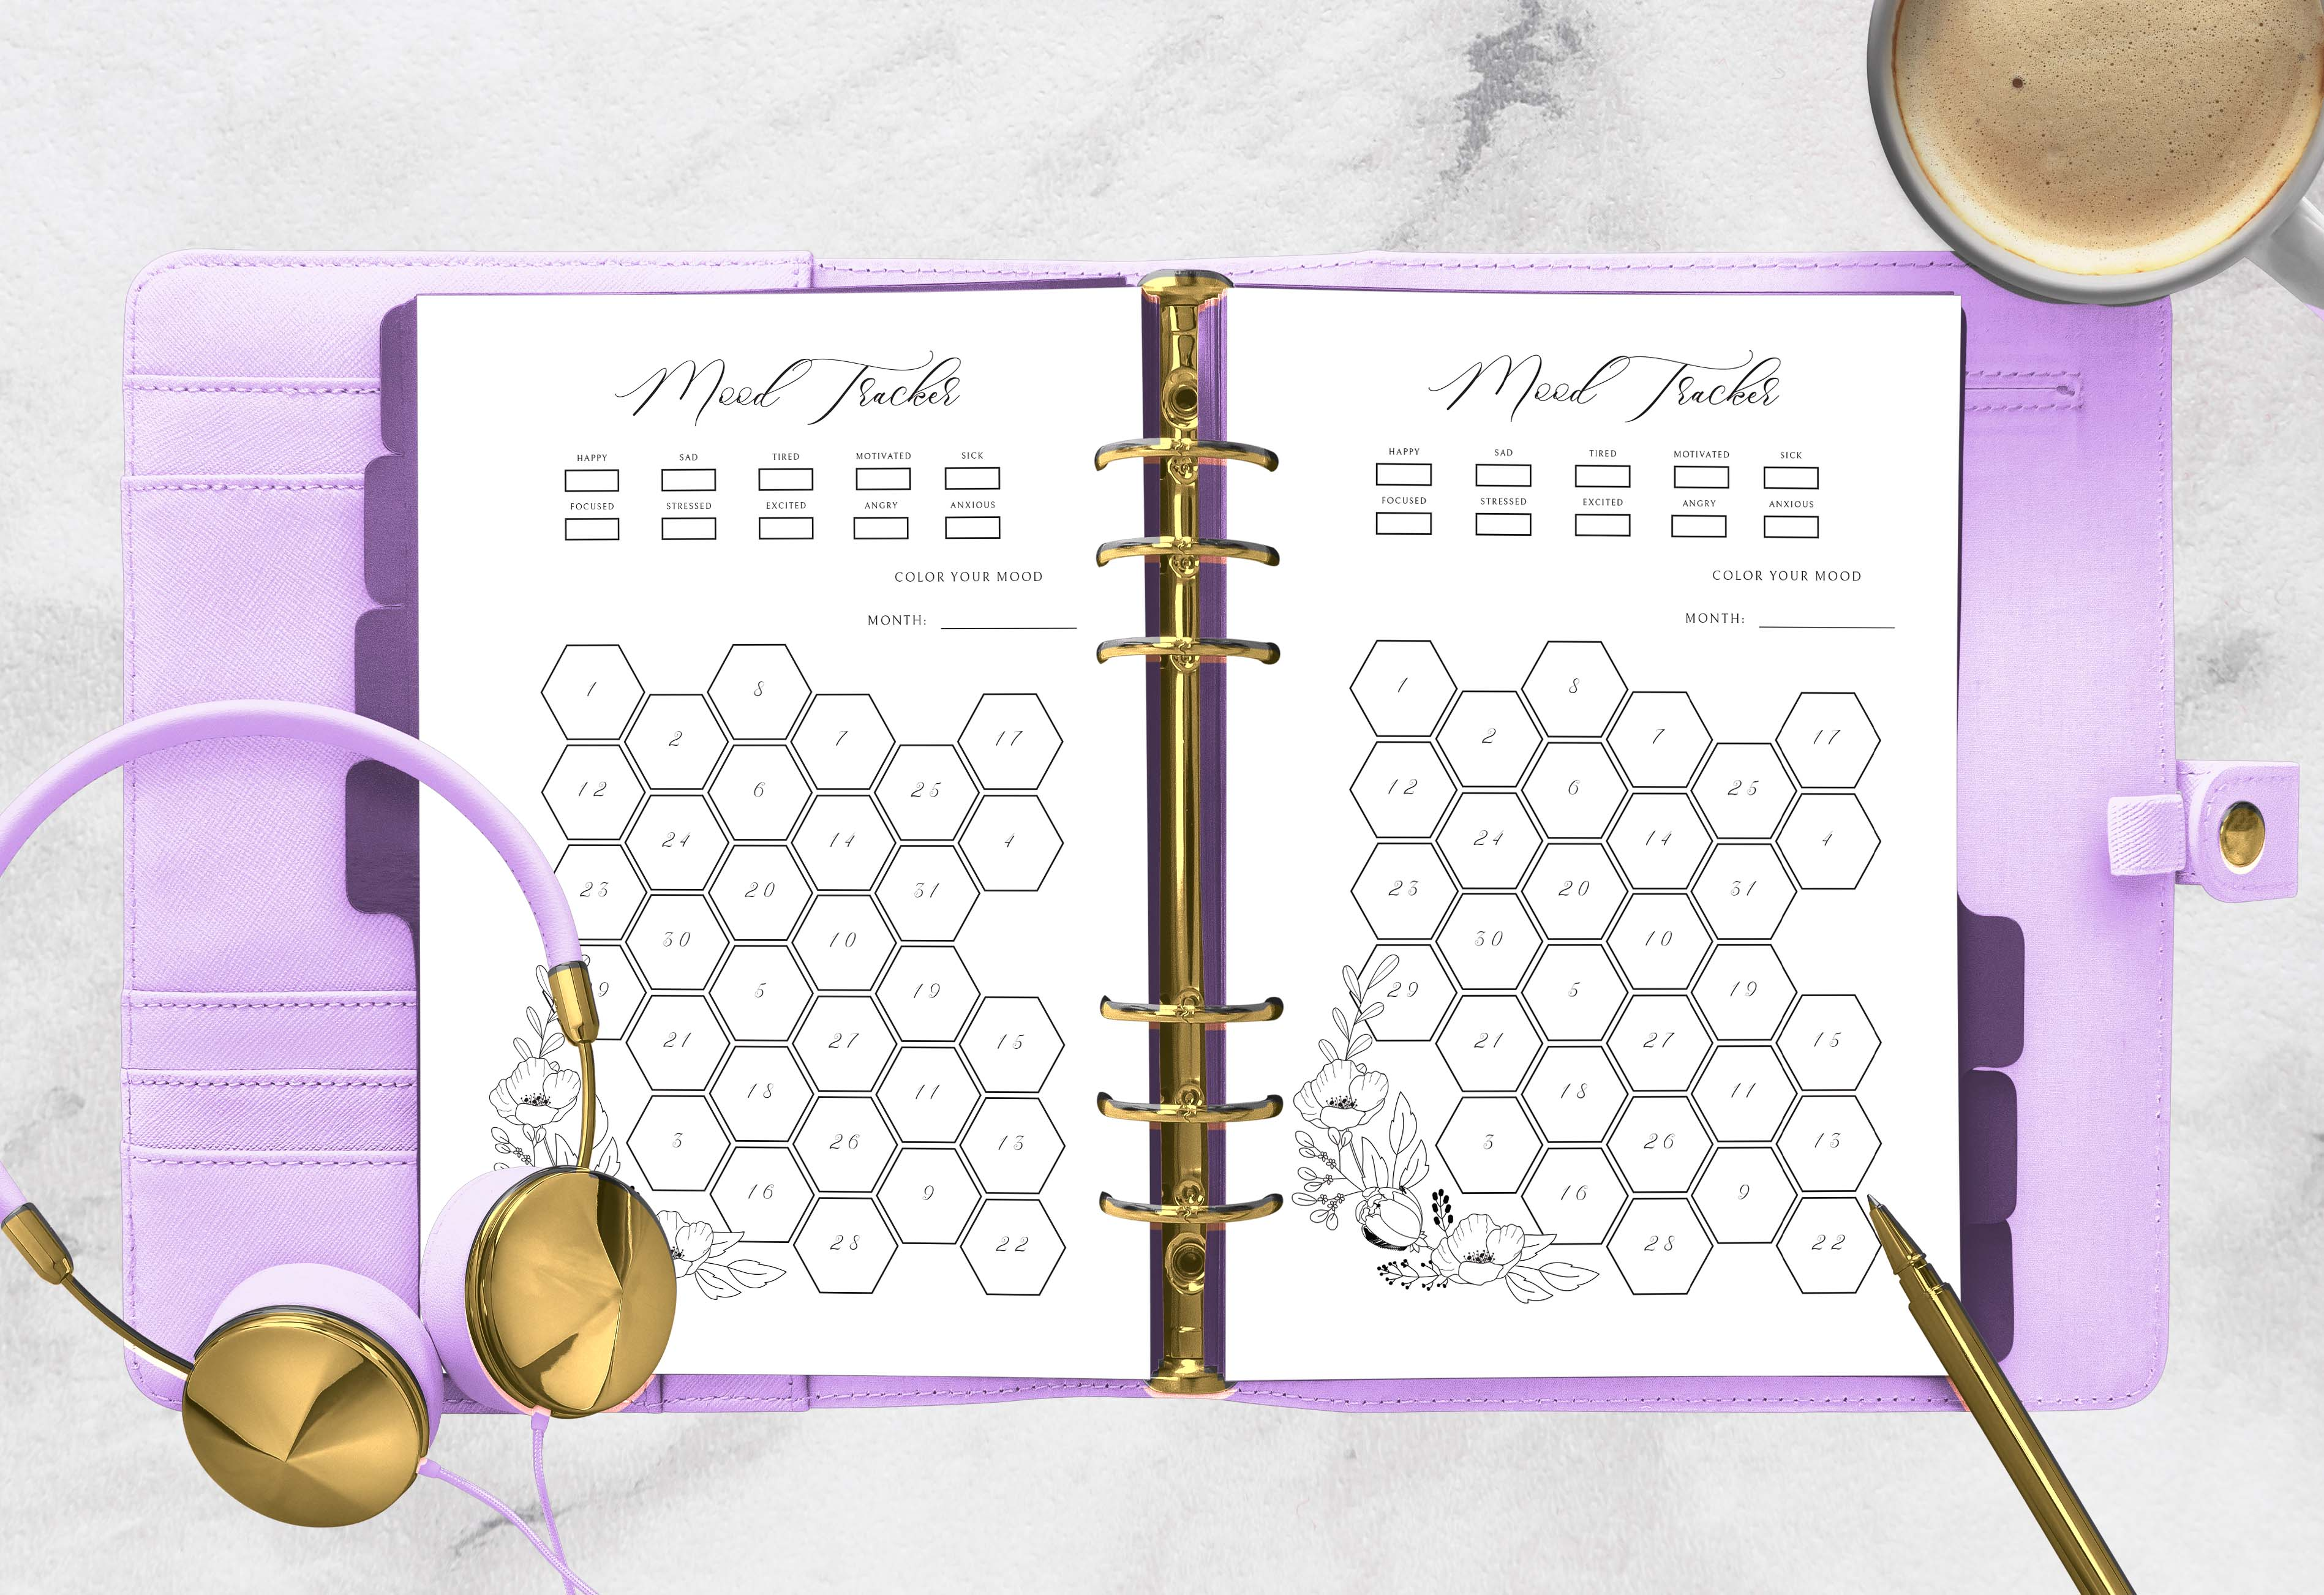 Download Free Mood Tracker Printable Planner To Color Graphic By Planfantastic for Cricut Explore, Silhouette and other cutting machines.